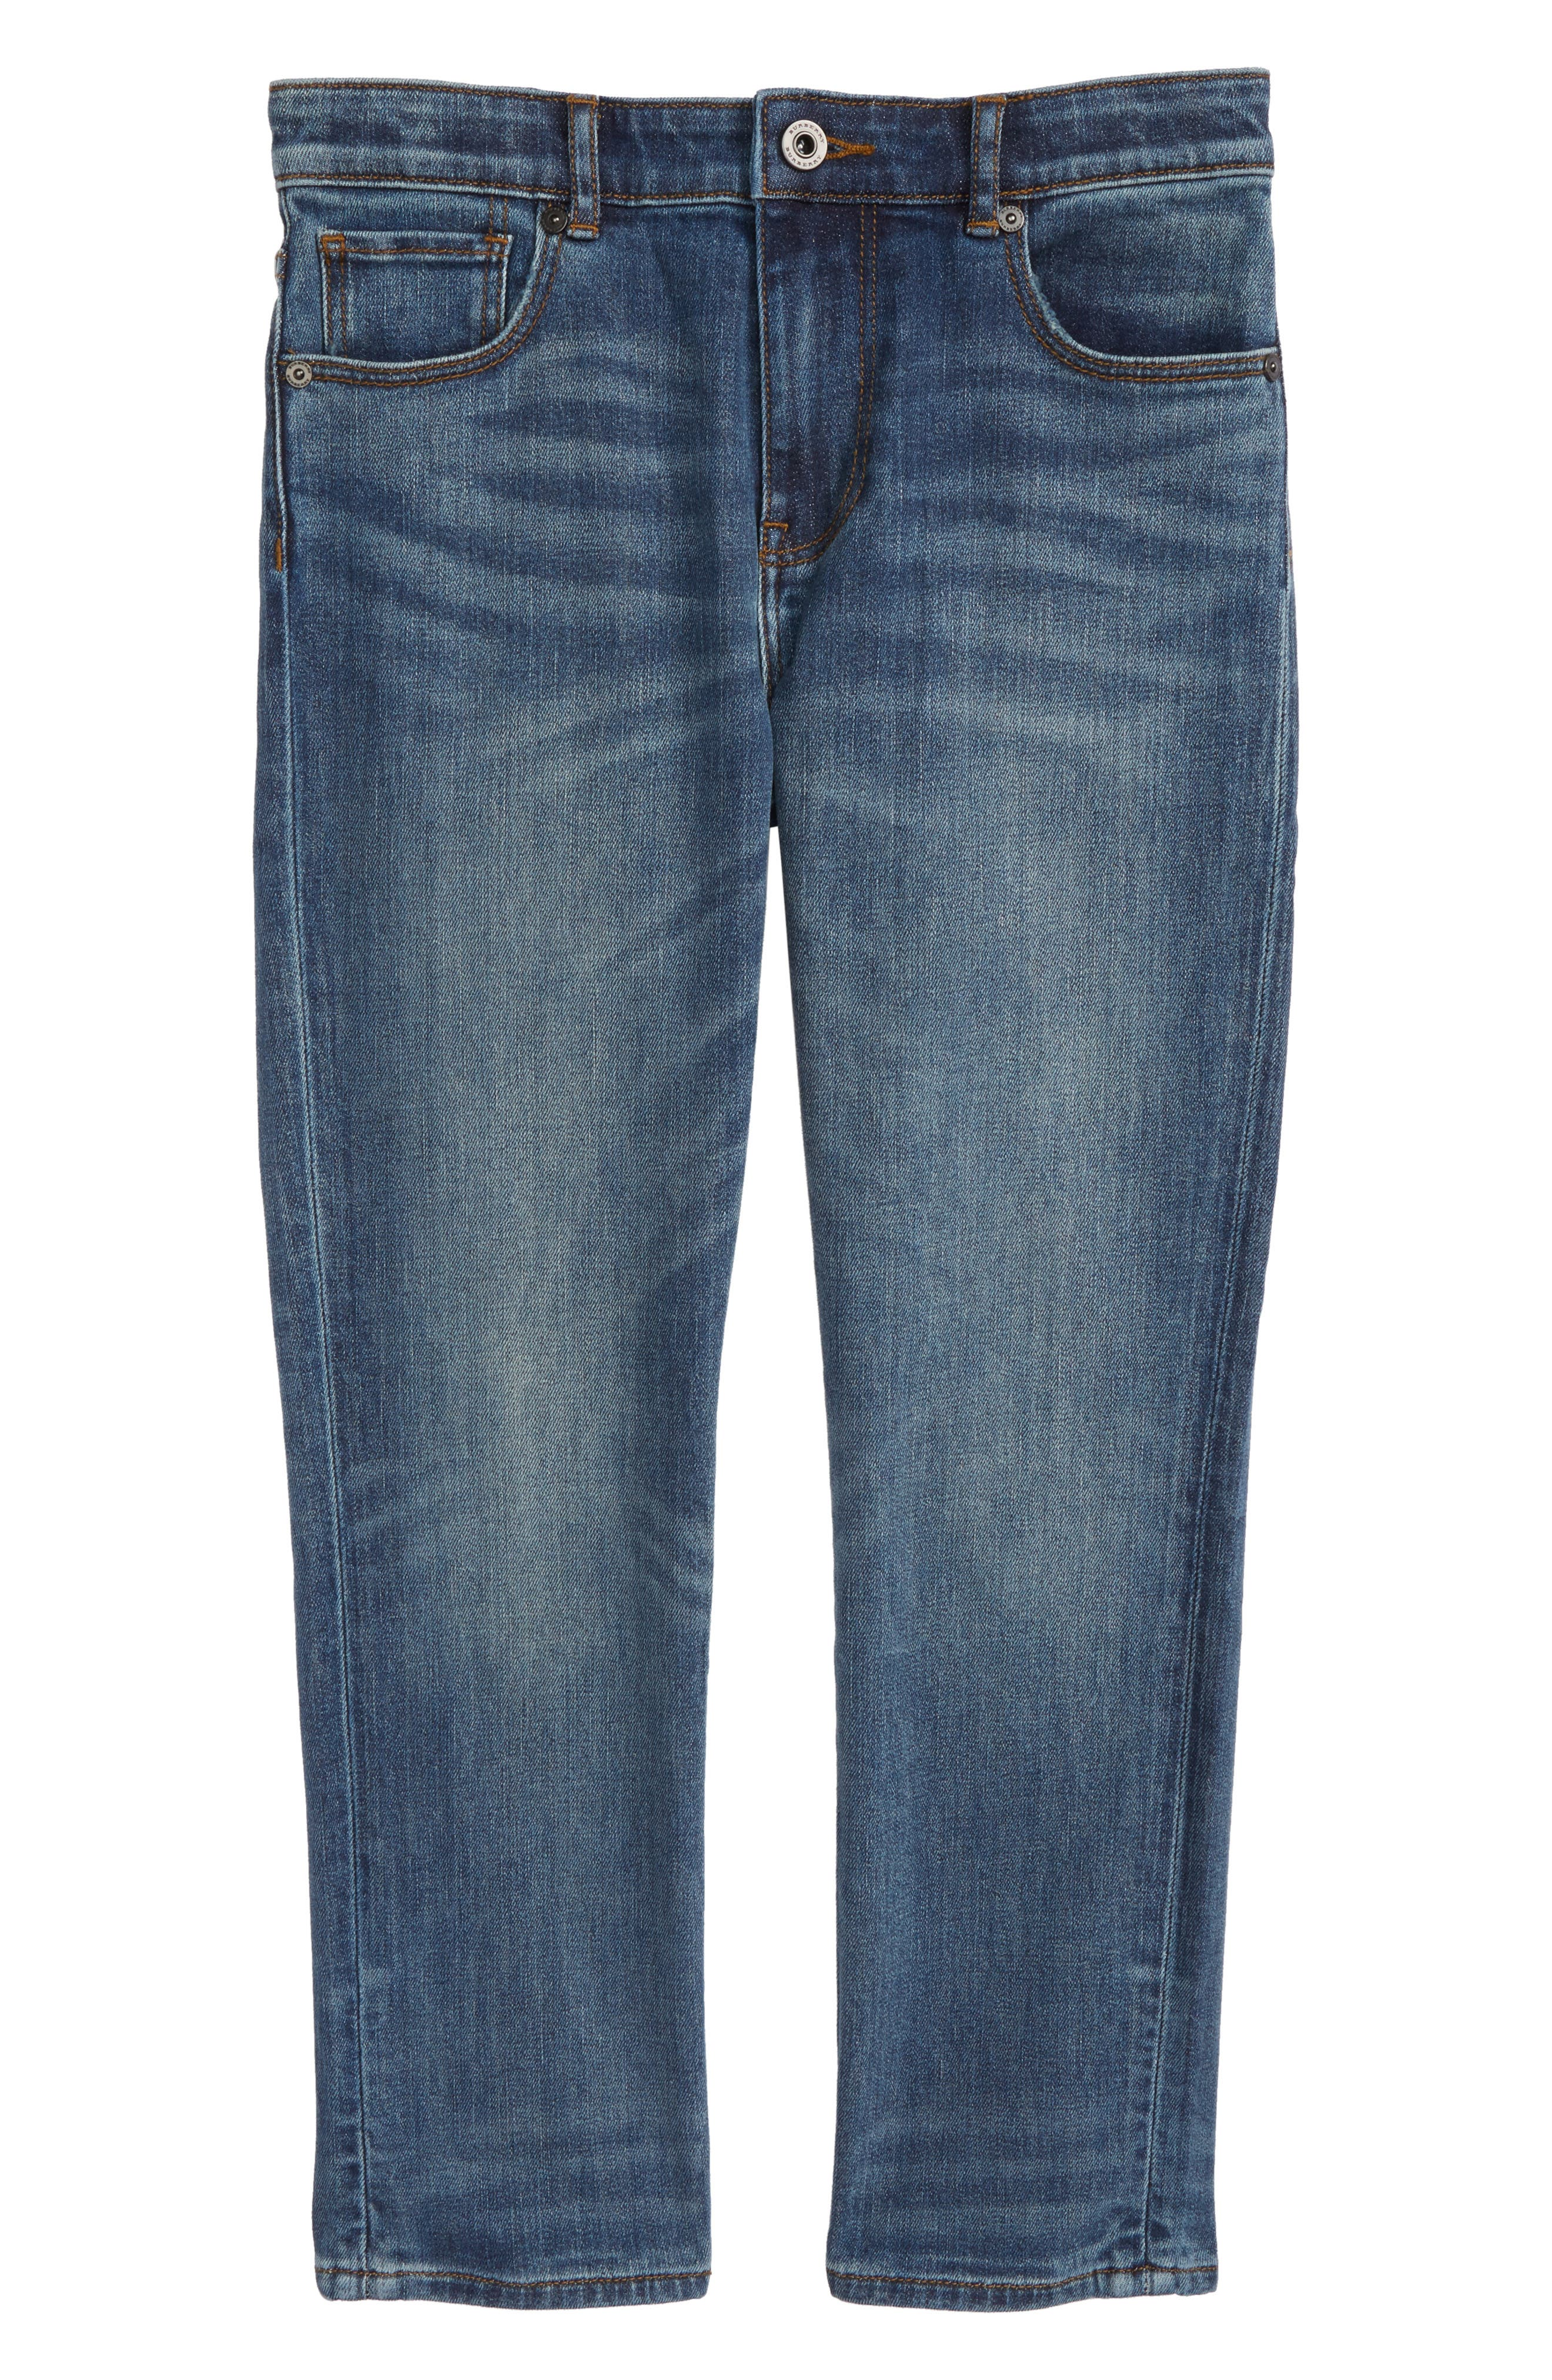 Burberry Relaxed Fit Jeans (Little Boys & Big Boys)